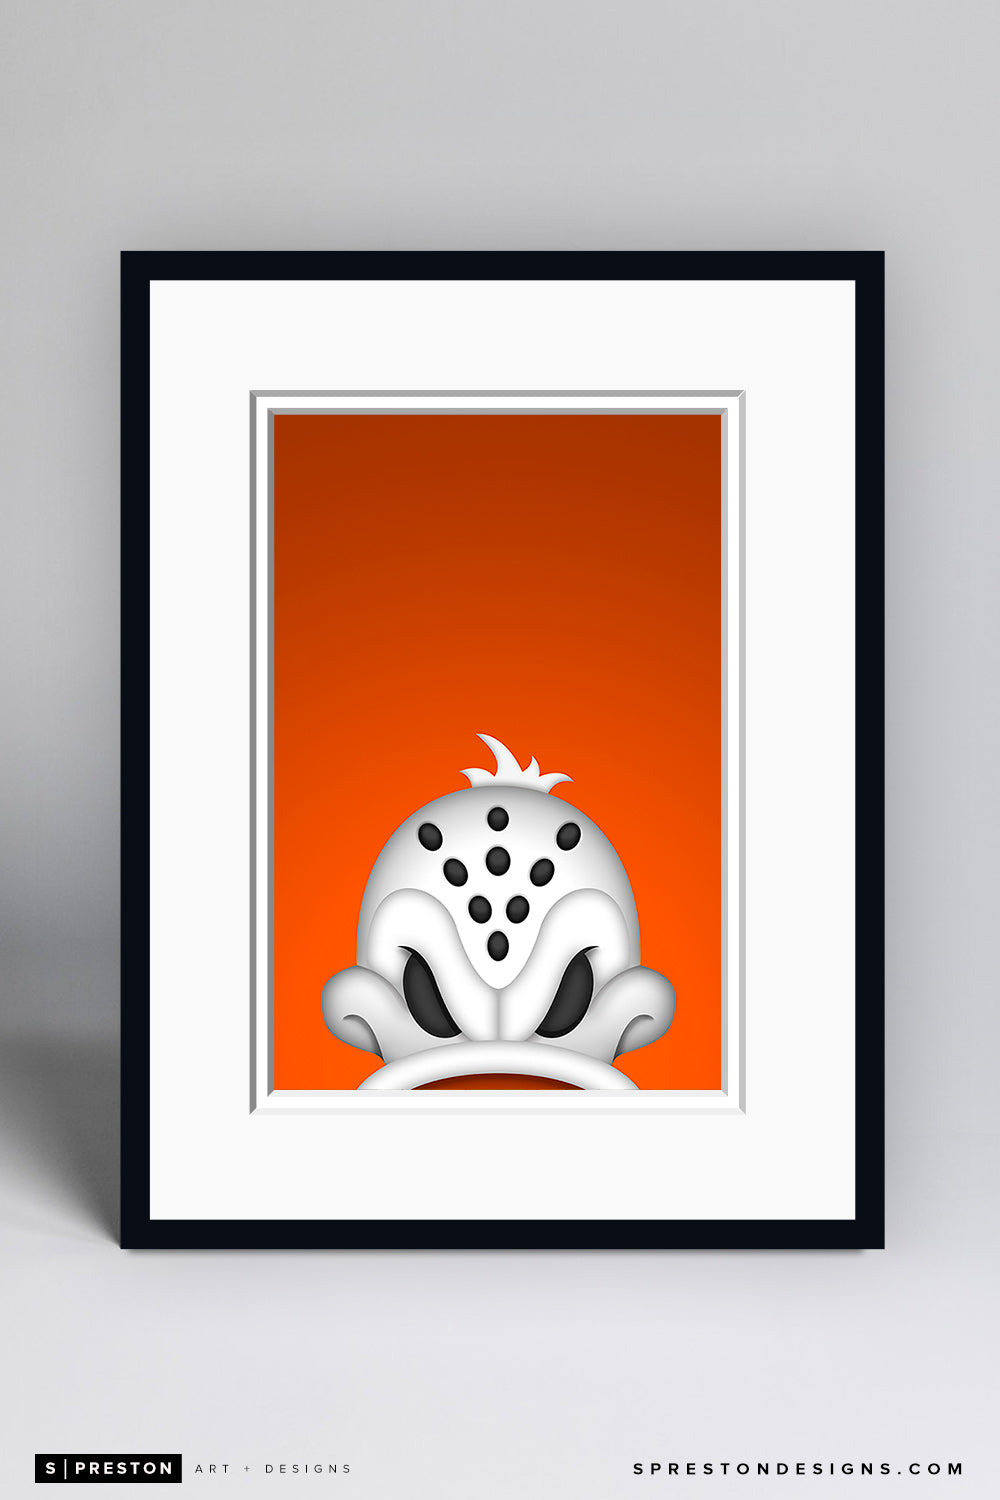 Minimalist Wild Wing Art Print - Anaheim Ducks - S. Preston Art + Designs